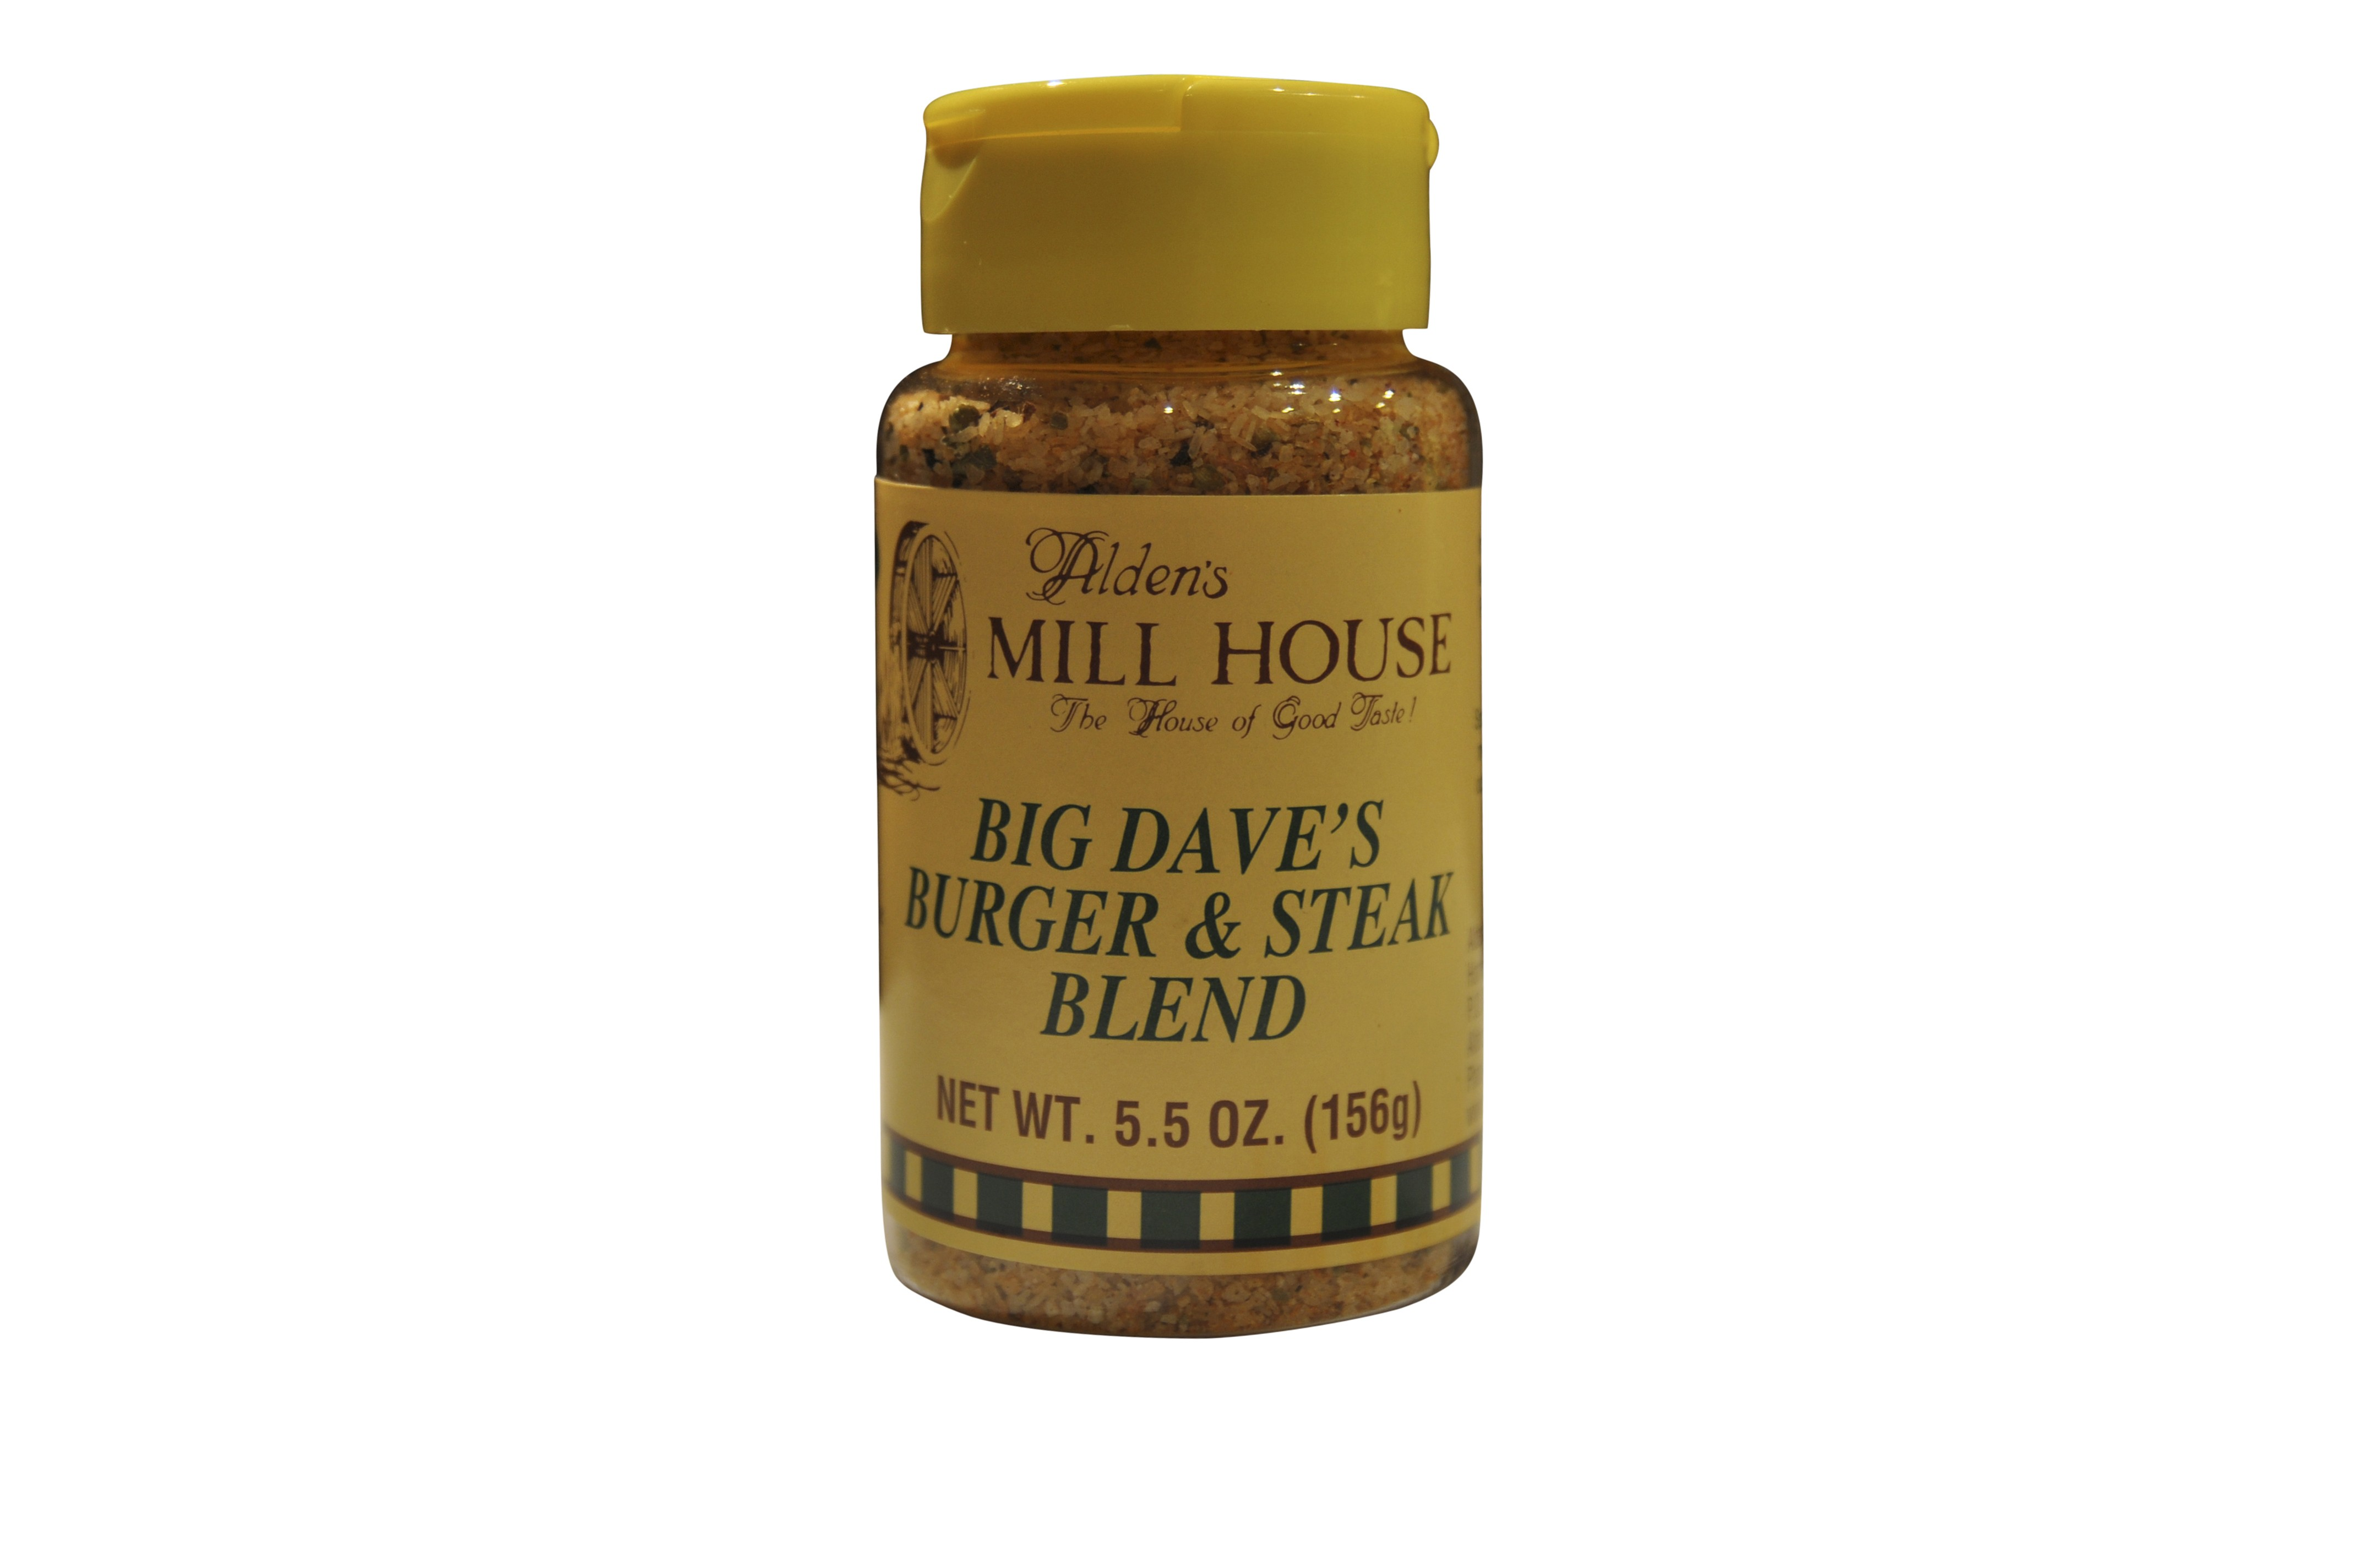 Big Dave's Burger & Steak Blend